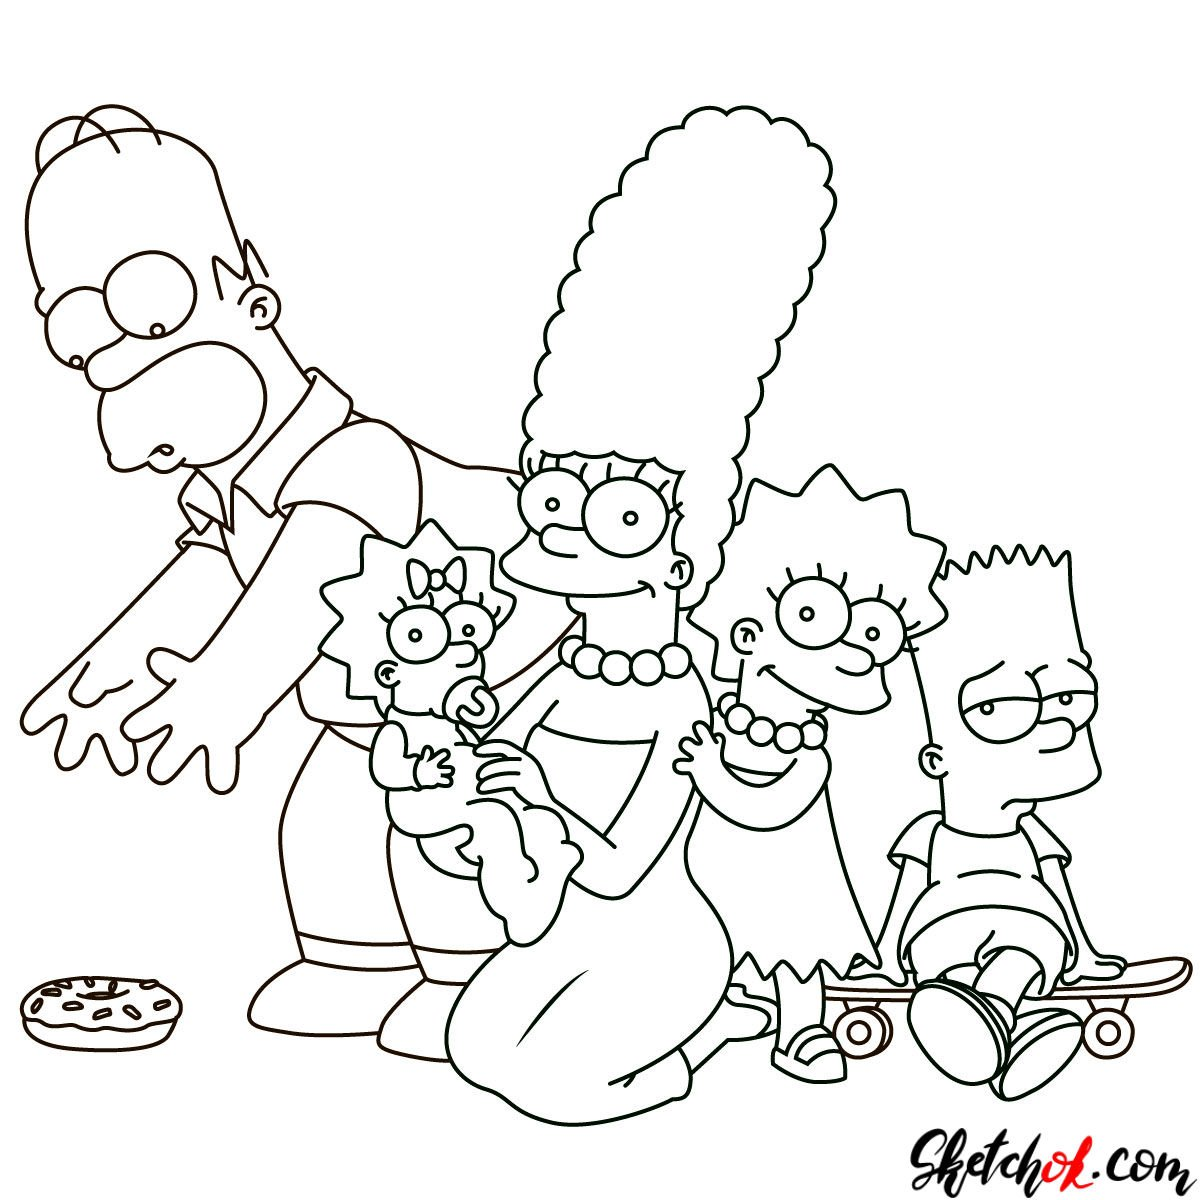 How to draw the Simpsons Family - step 30